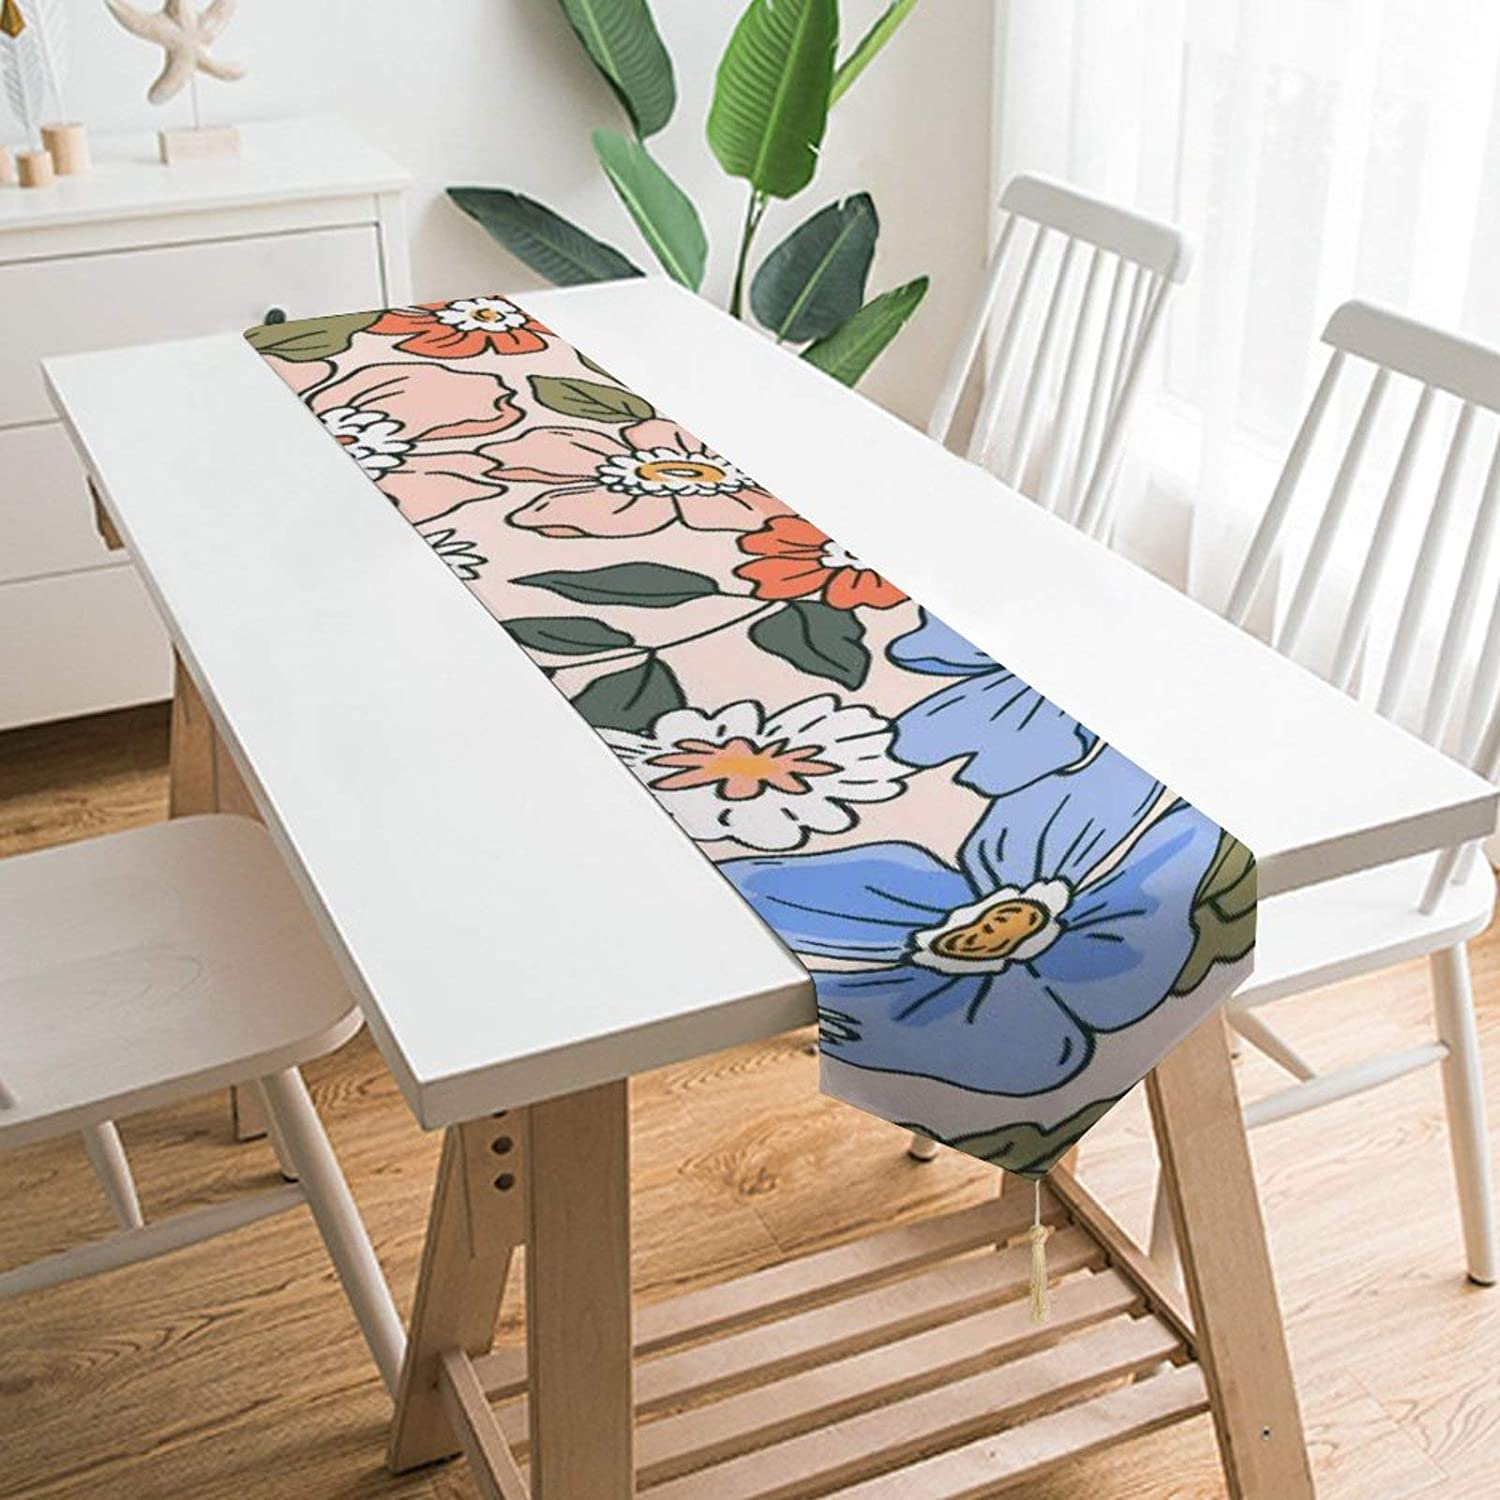 UNSUWU Table Runner Spring Bouquet Floral Flowers Pattern Table Runners 70 inches Long Non-Slip Easy to Clean Heat Resistant Modern Table Runner with Tassels for Family Dinner Dining Kitchen